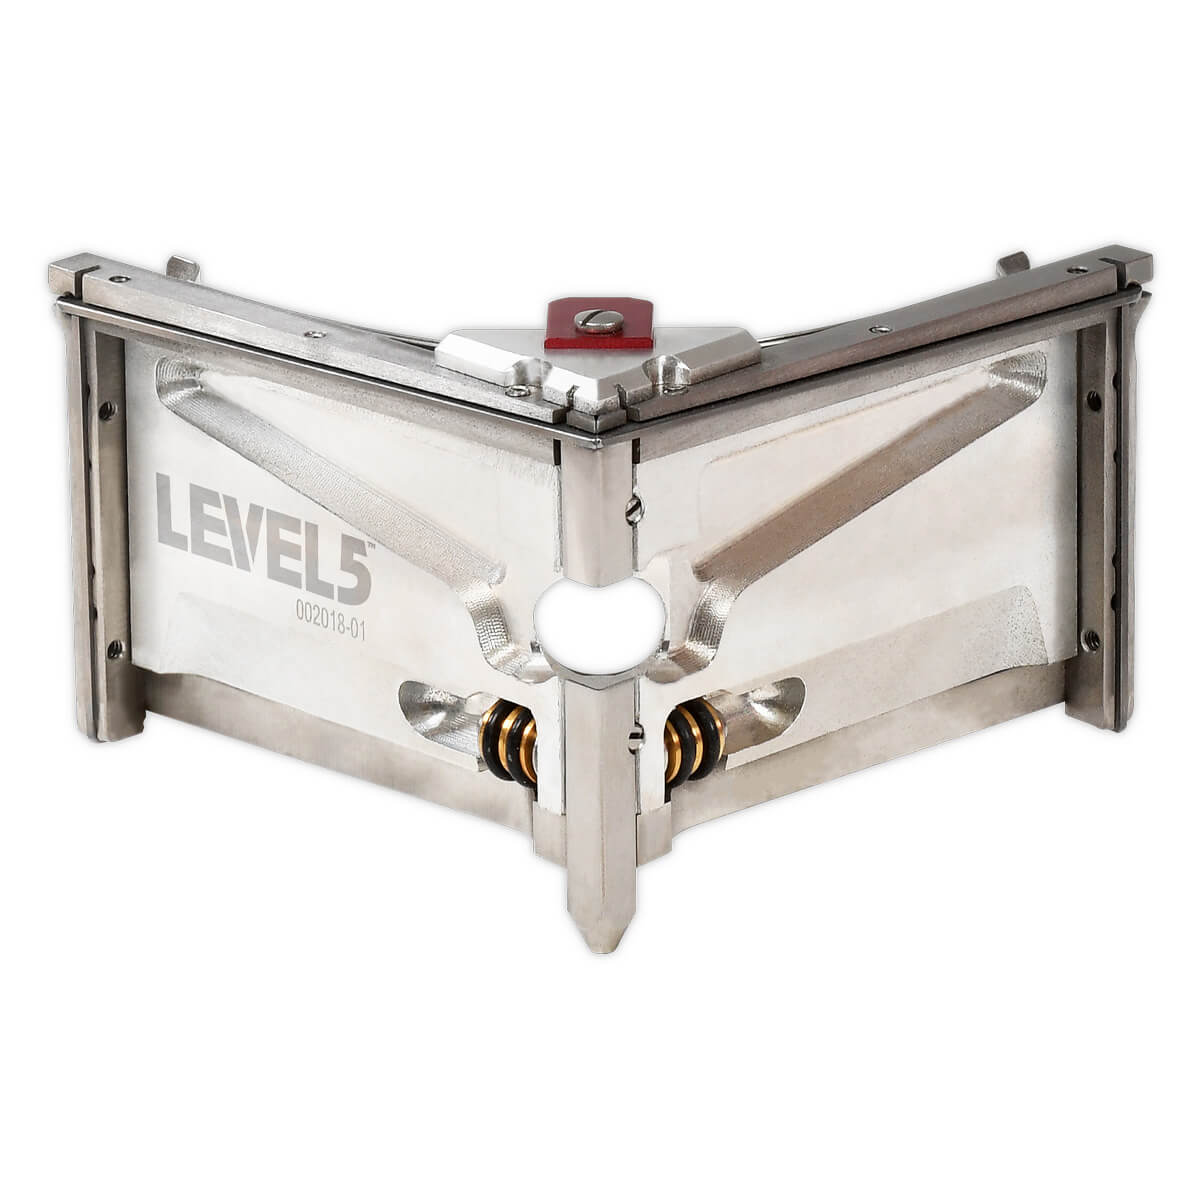 LEVEL5 4-Inch Drywall Corner Finisher | 4-735